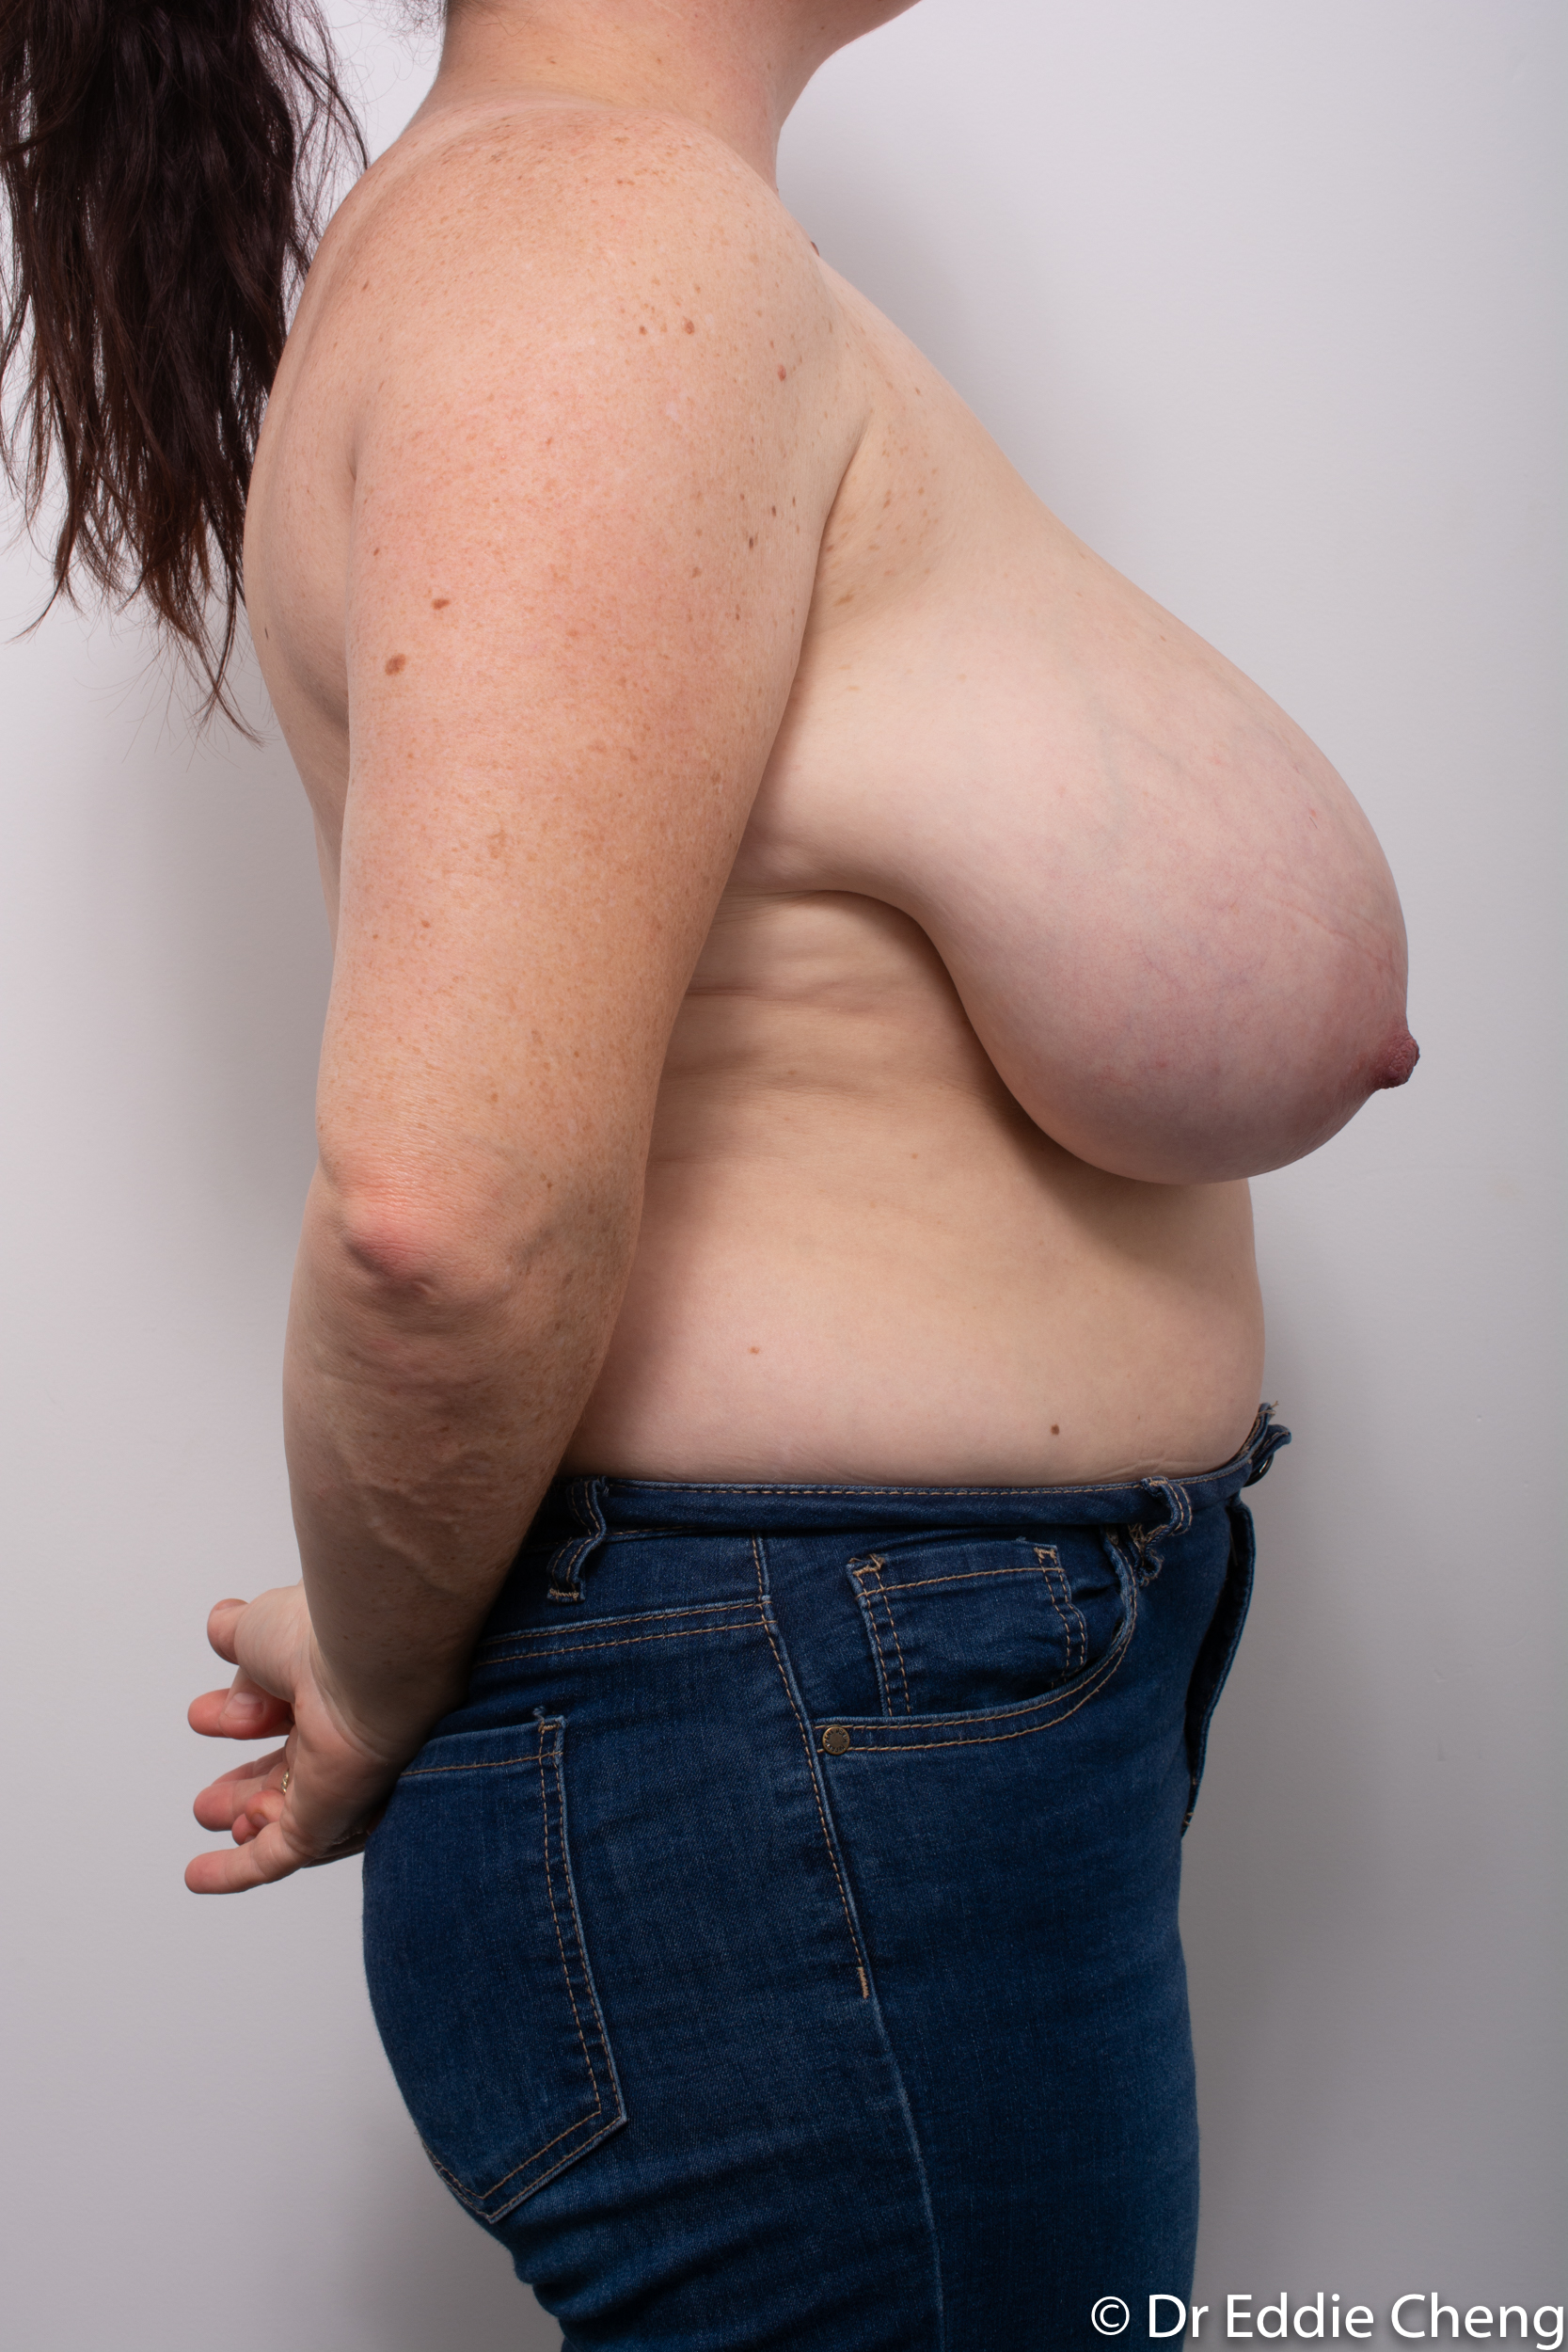 breast reduction dr eddie cheng brisbane surgeon pre and post operative images-1